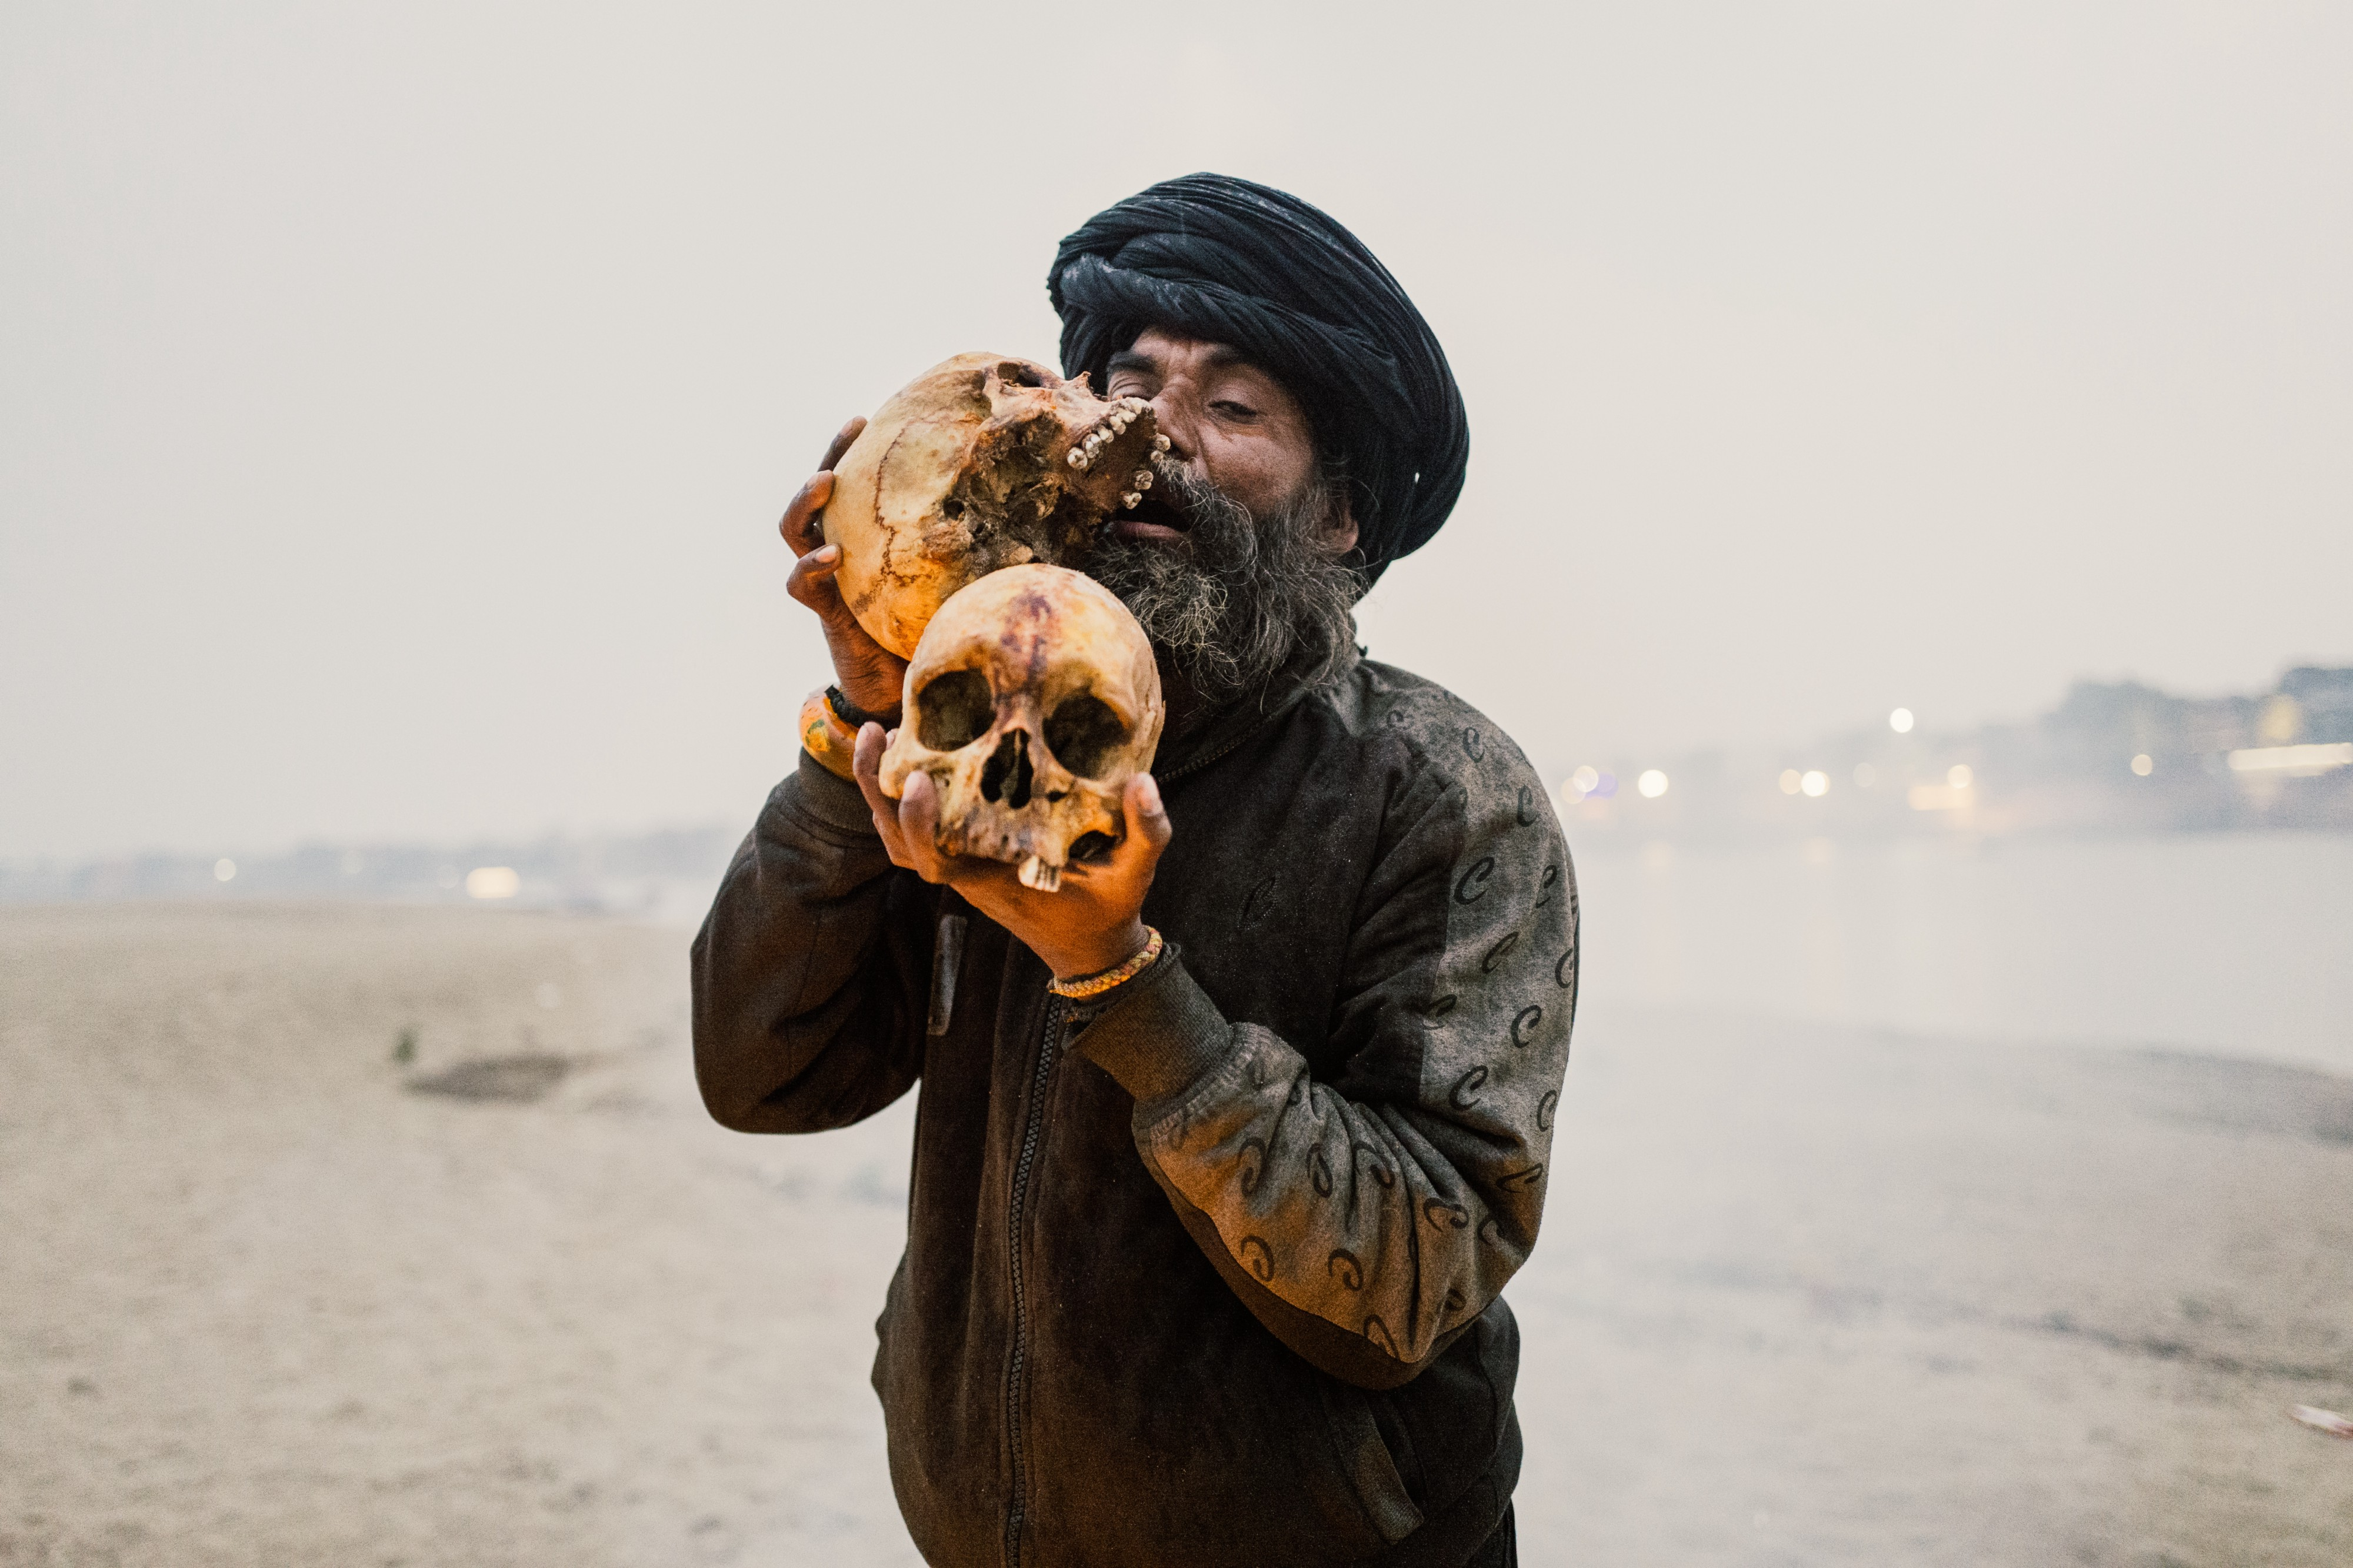 Aghori with skulls